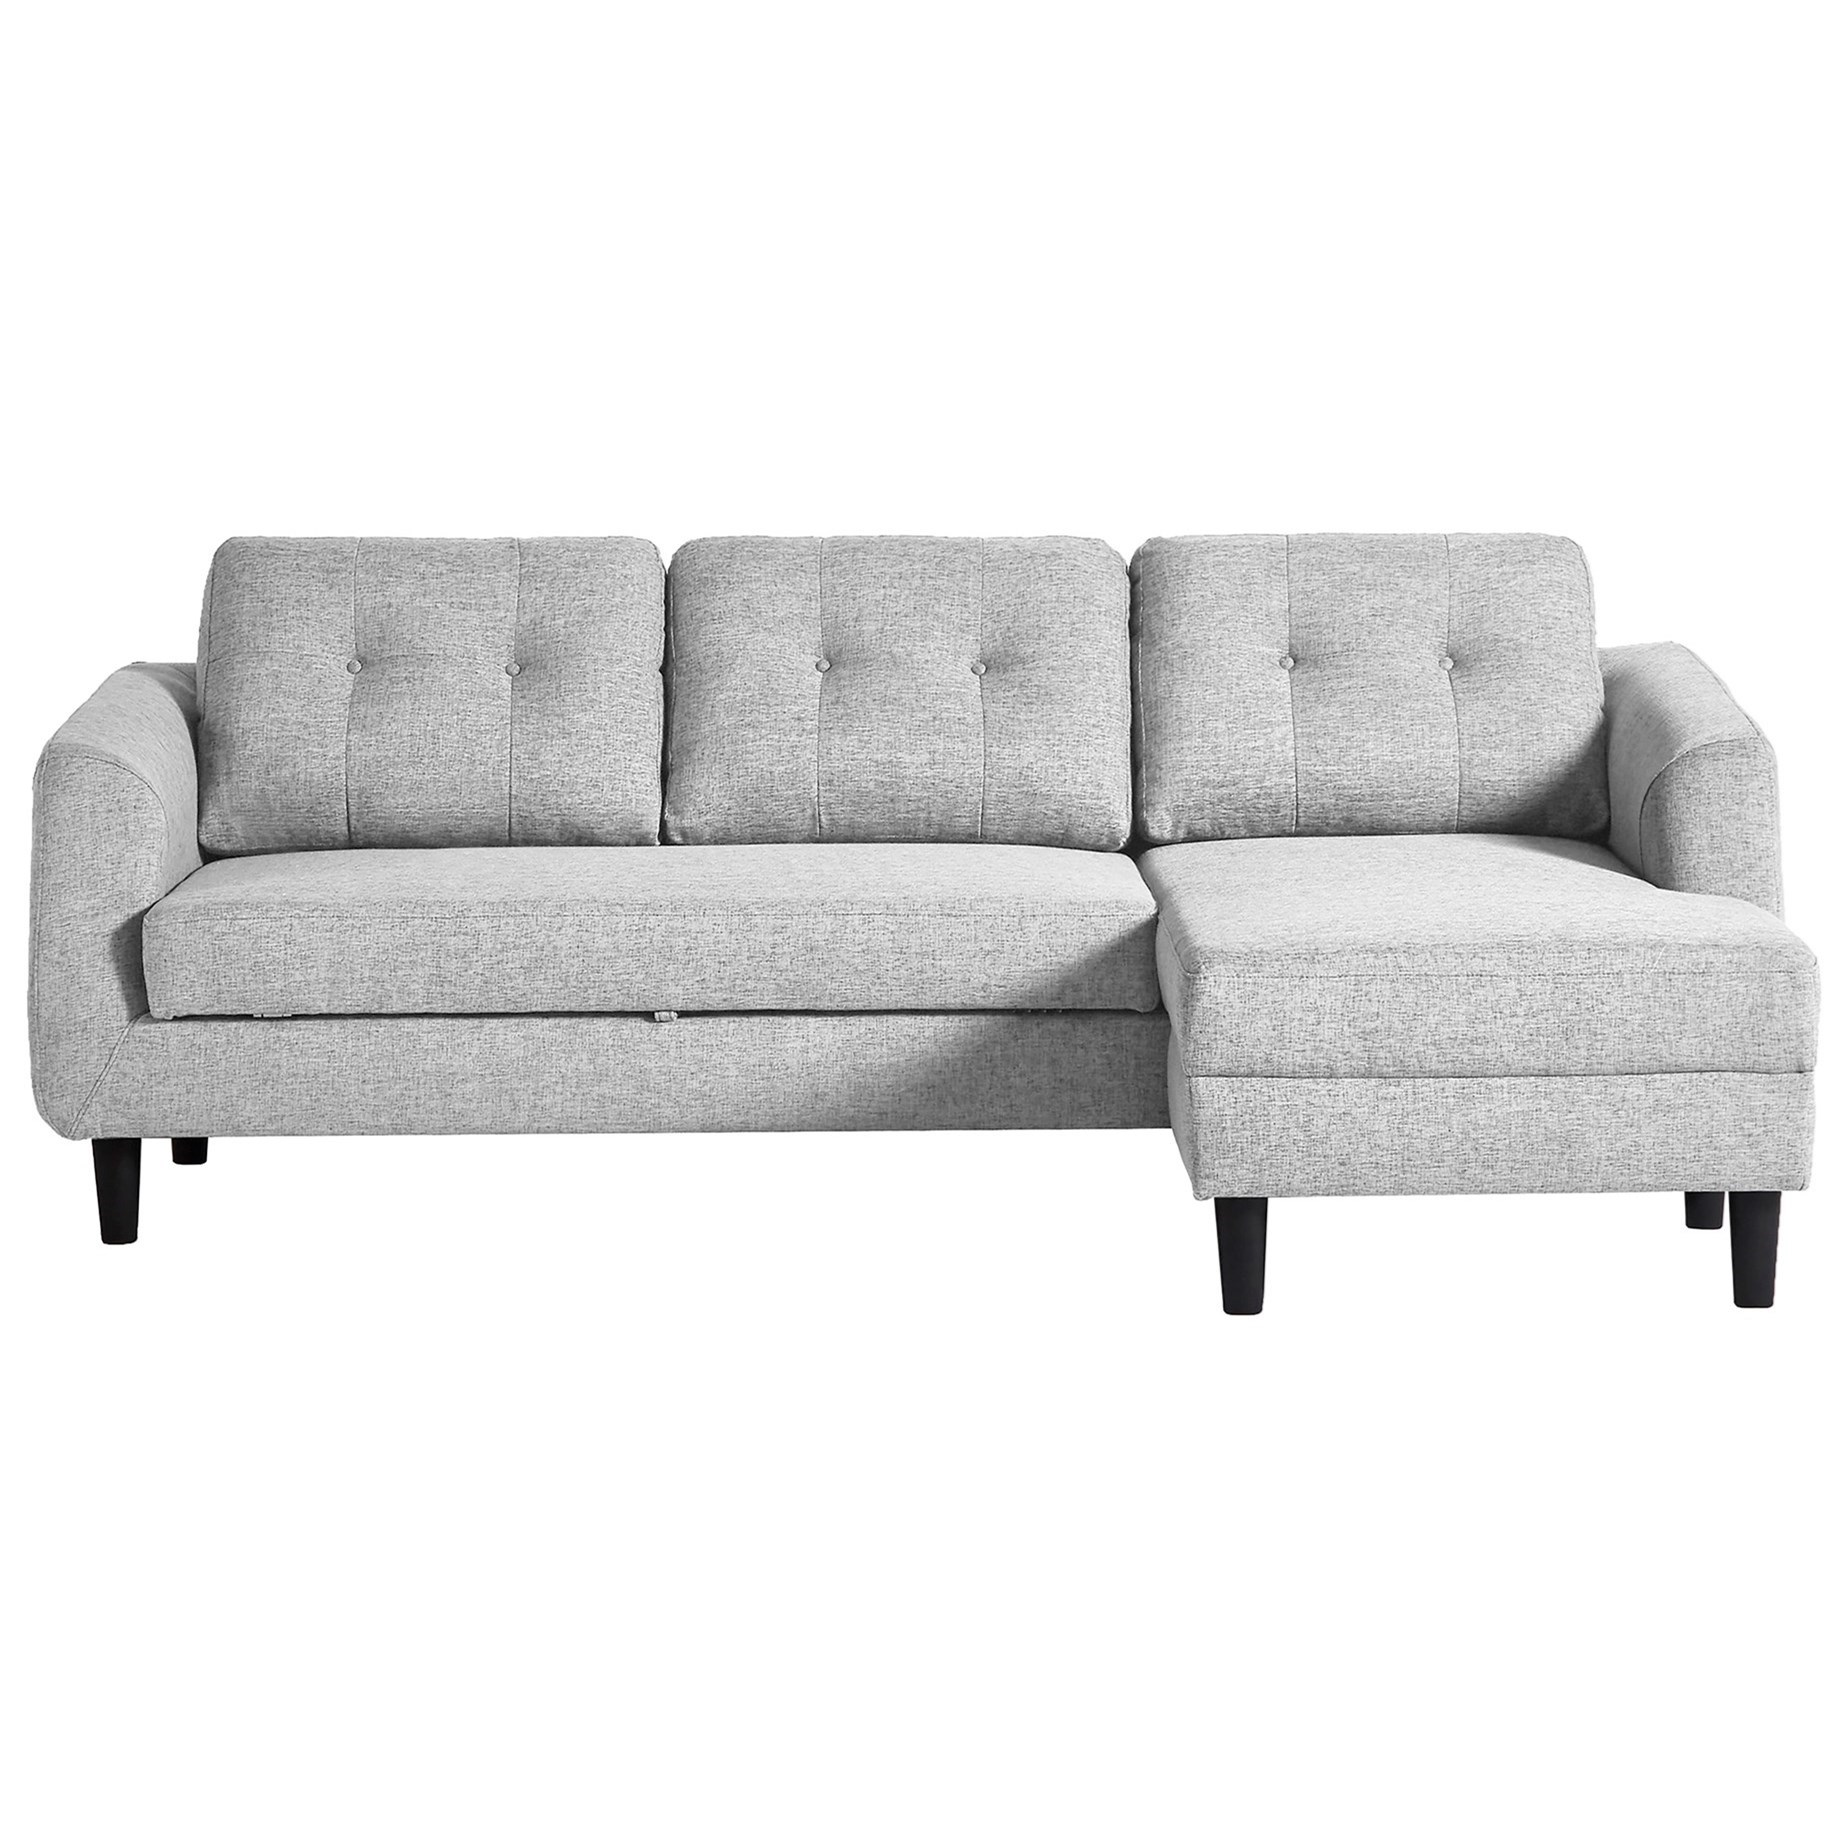 Belagio Sofa Bed with Chaise by Moe's Home Collection at Stoney Creek Furniture